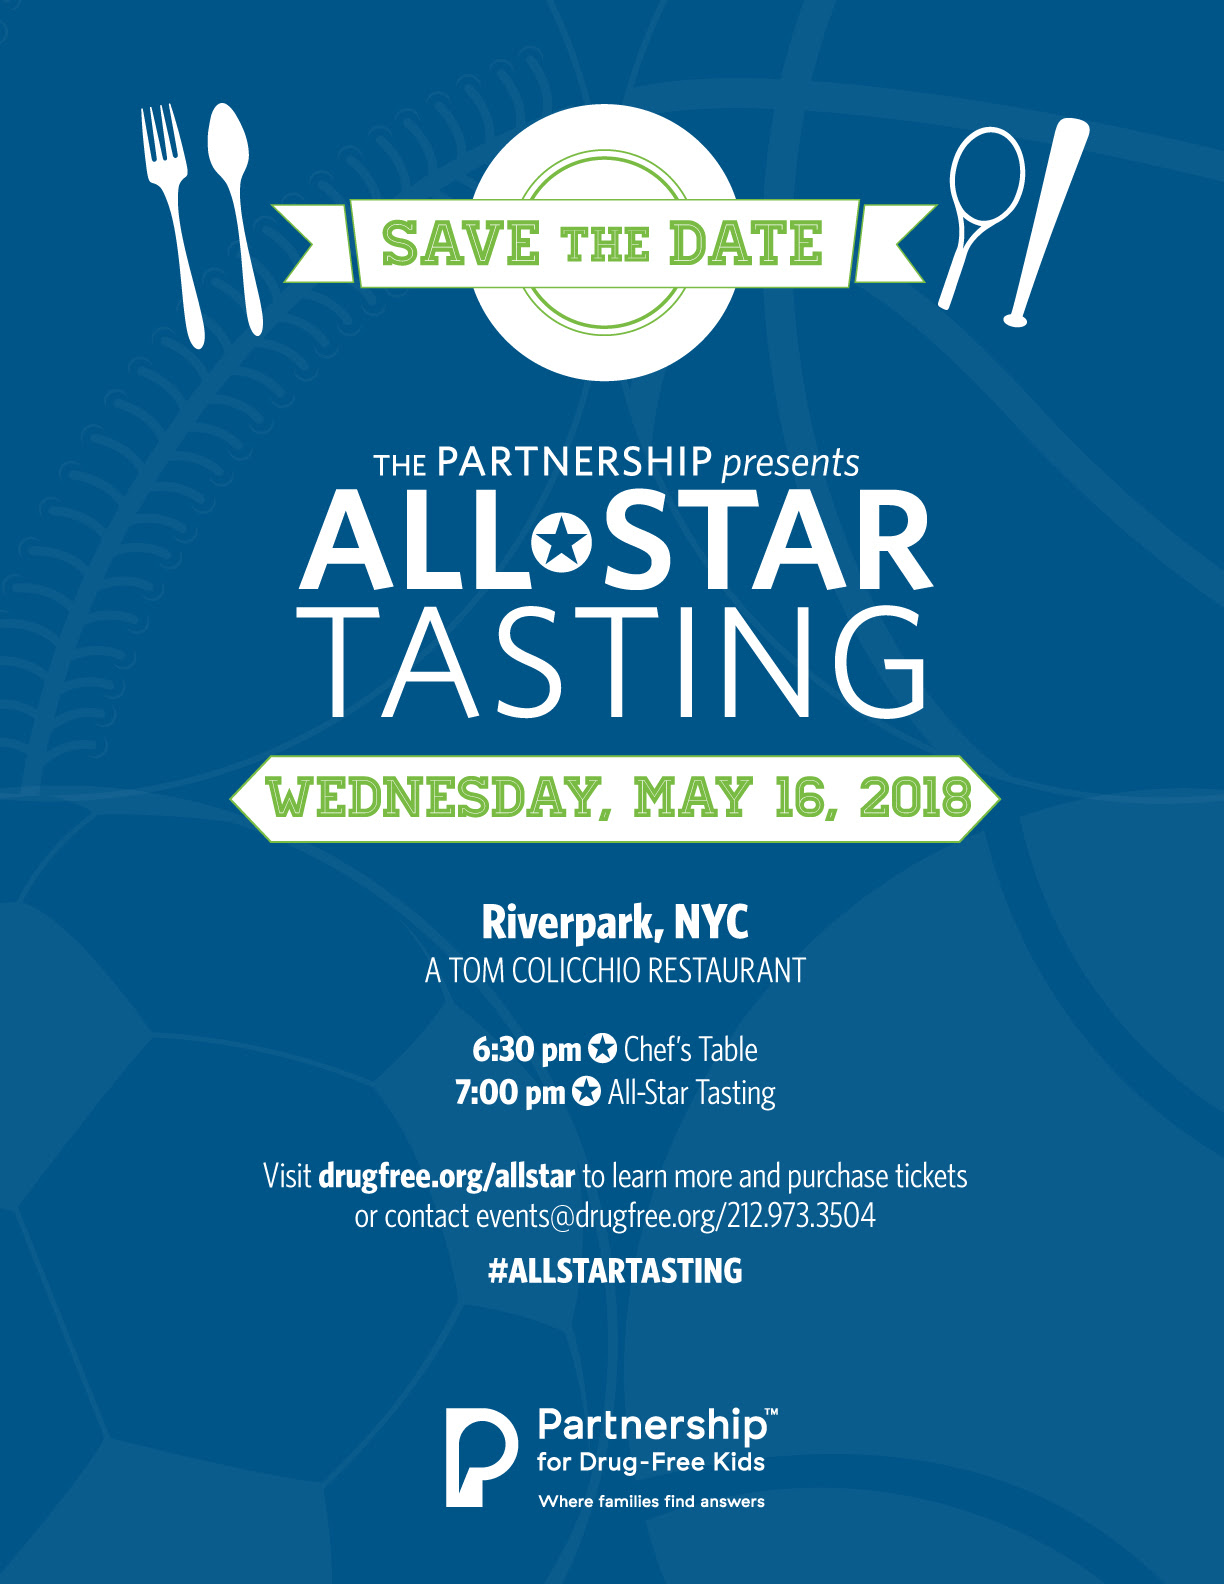 Save-the-Date: The Partnership Presents All-Star Tasting - May 16th, 2018